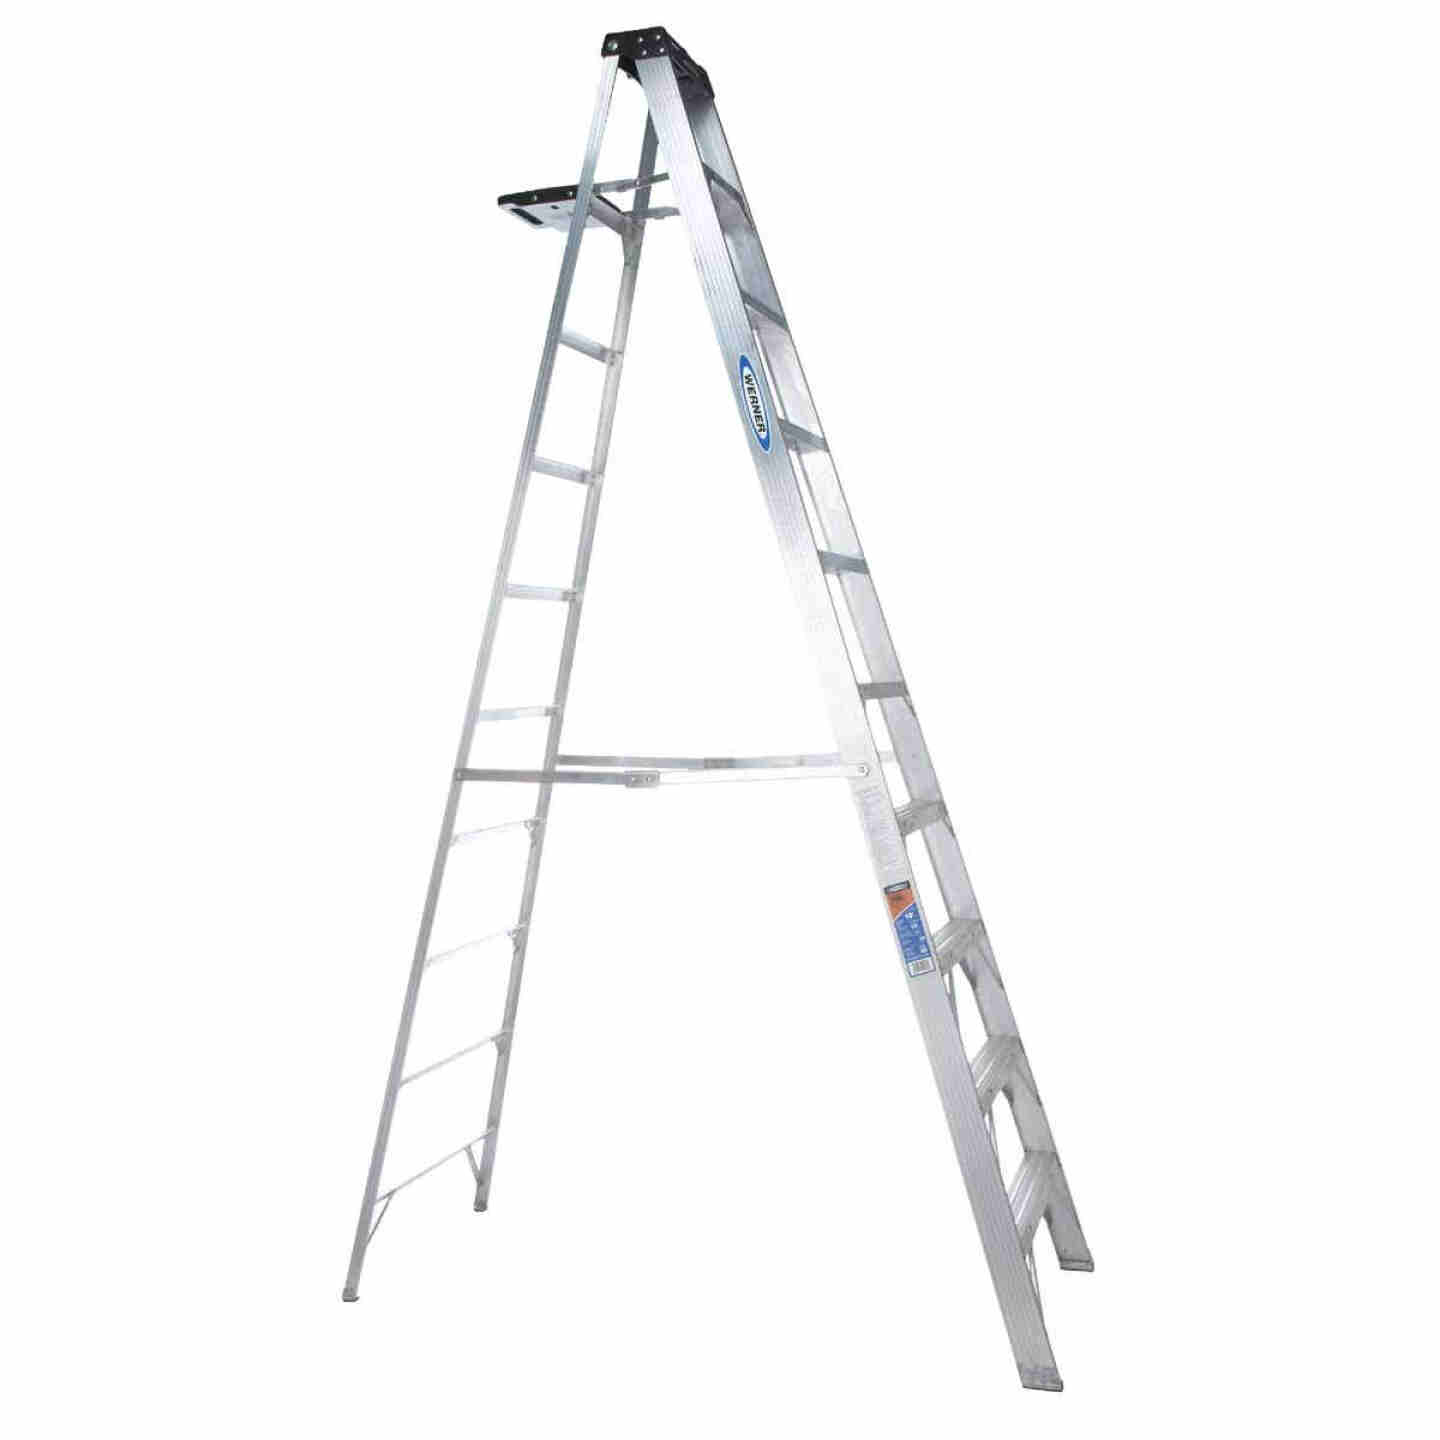 Werner 10 Ft. Aluminum Step Ladder with 300 Lb. Load Capacity Type IA Ladder Rating Image 1